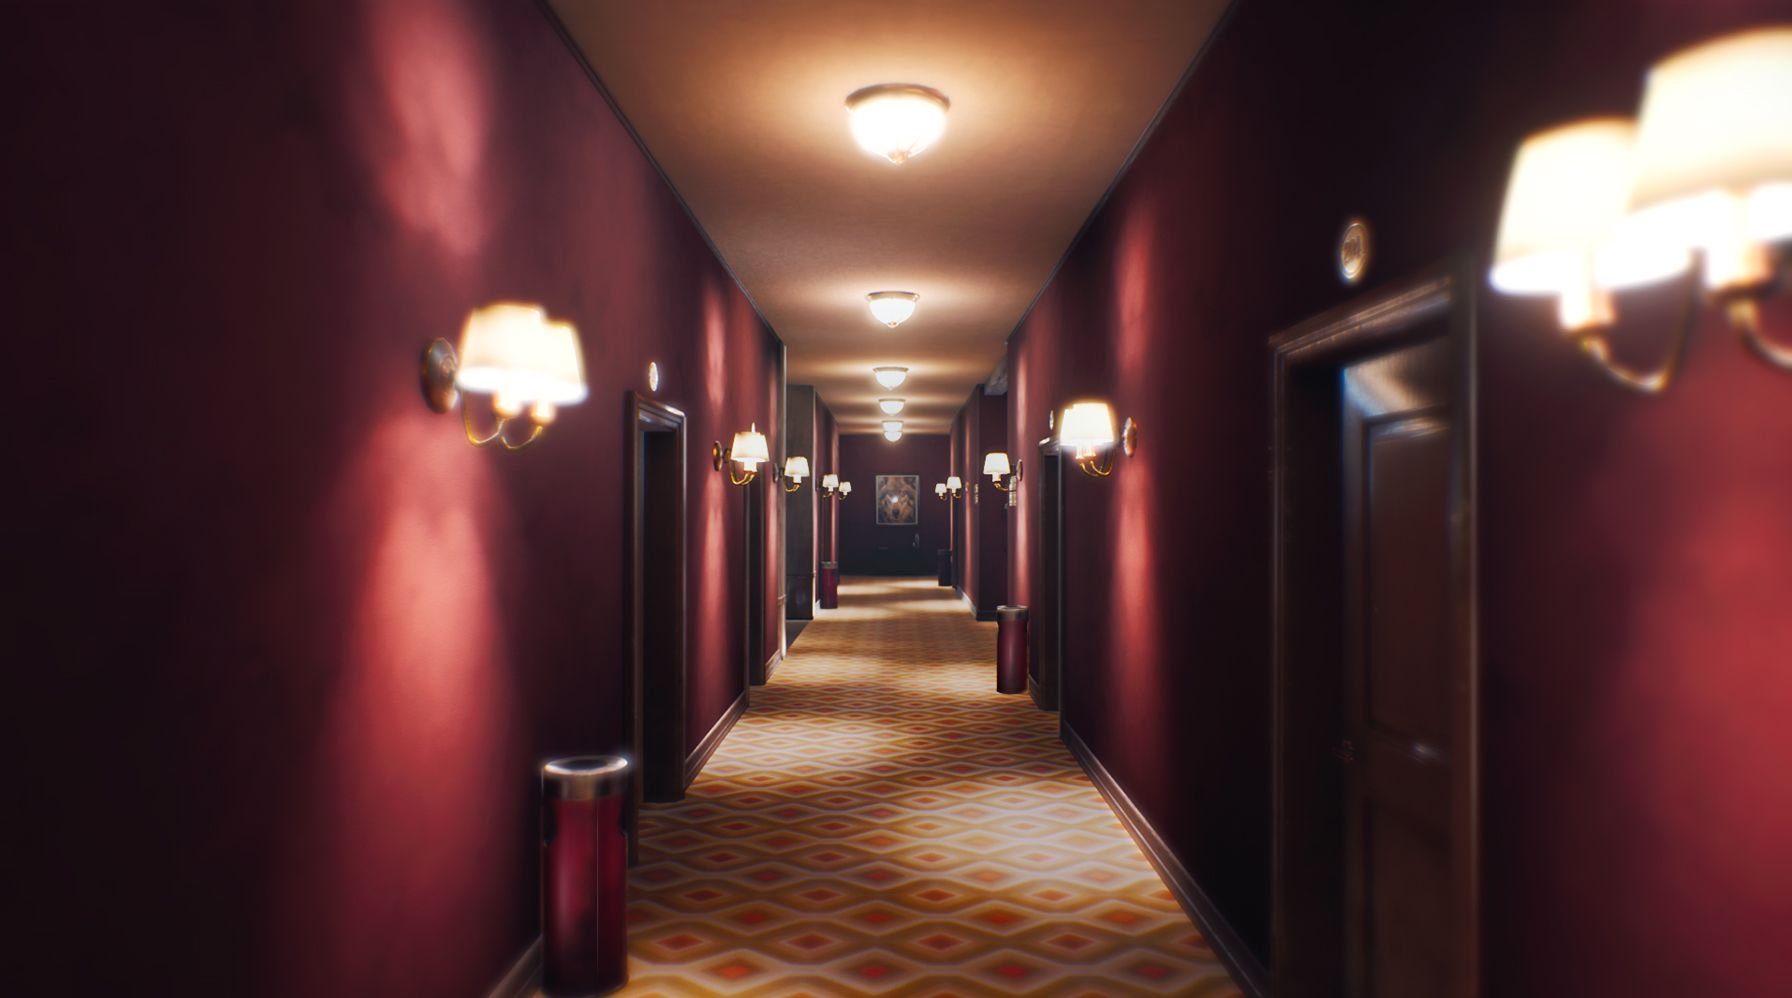 A well lit red hotel hallway